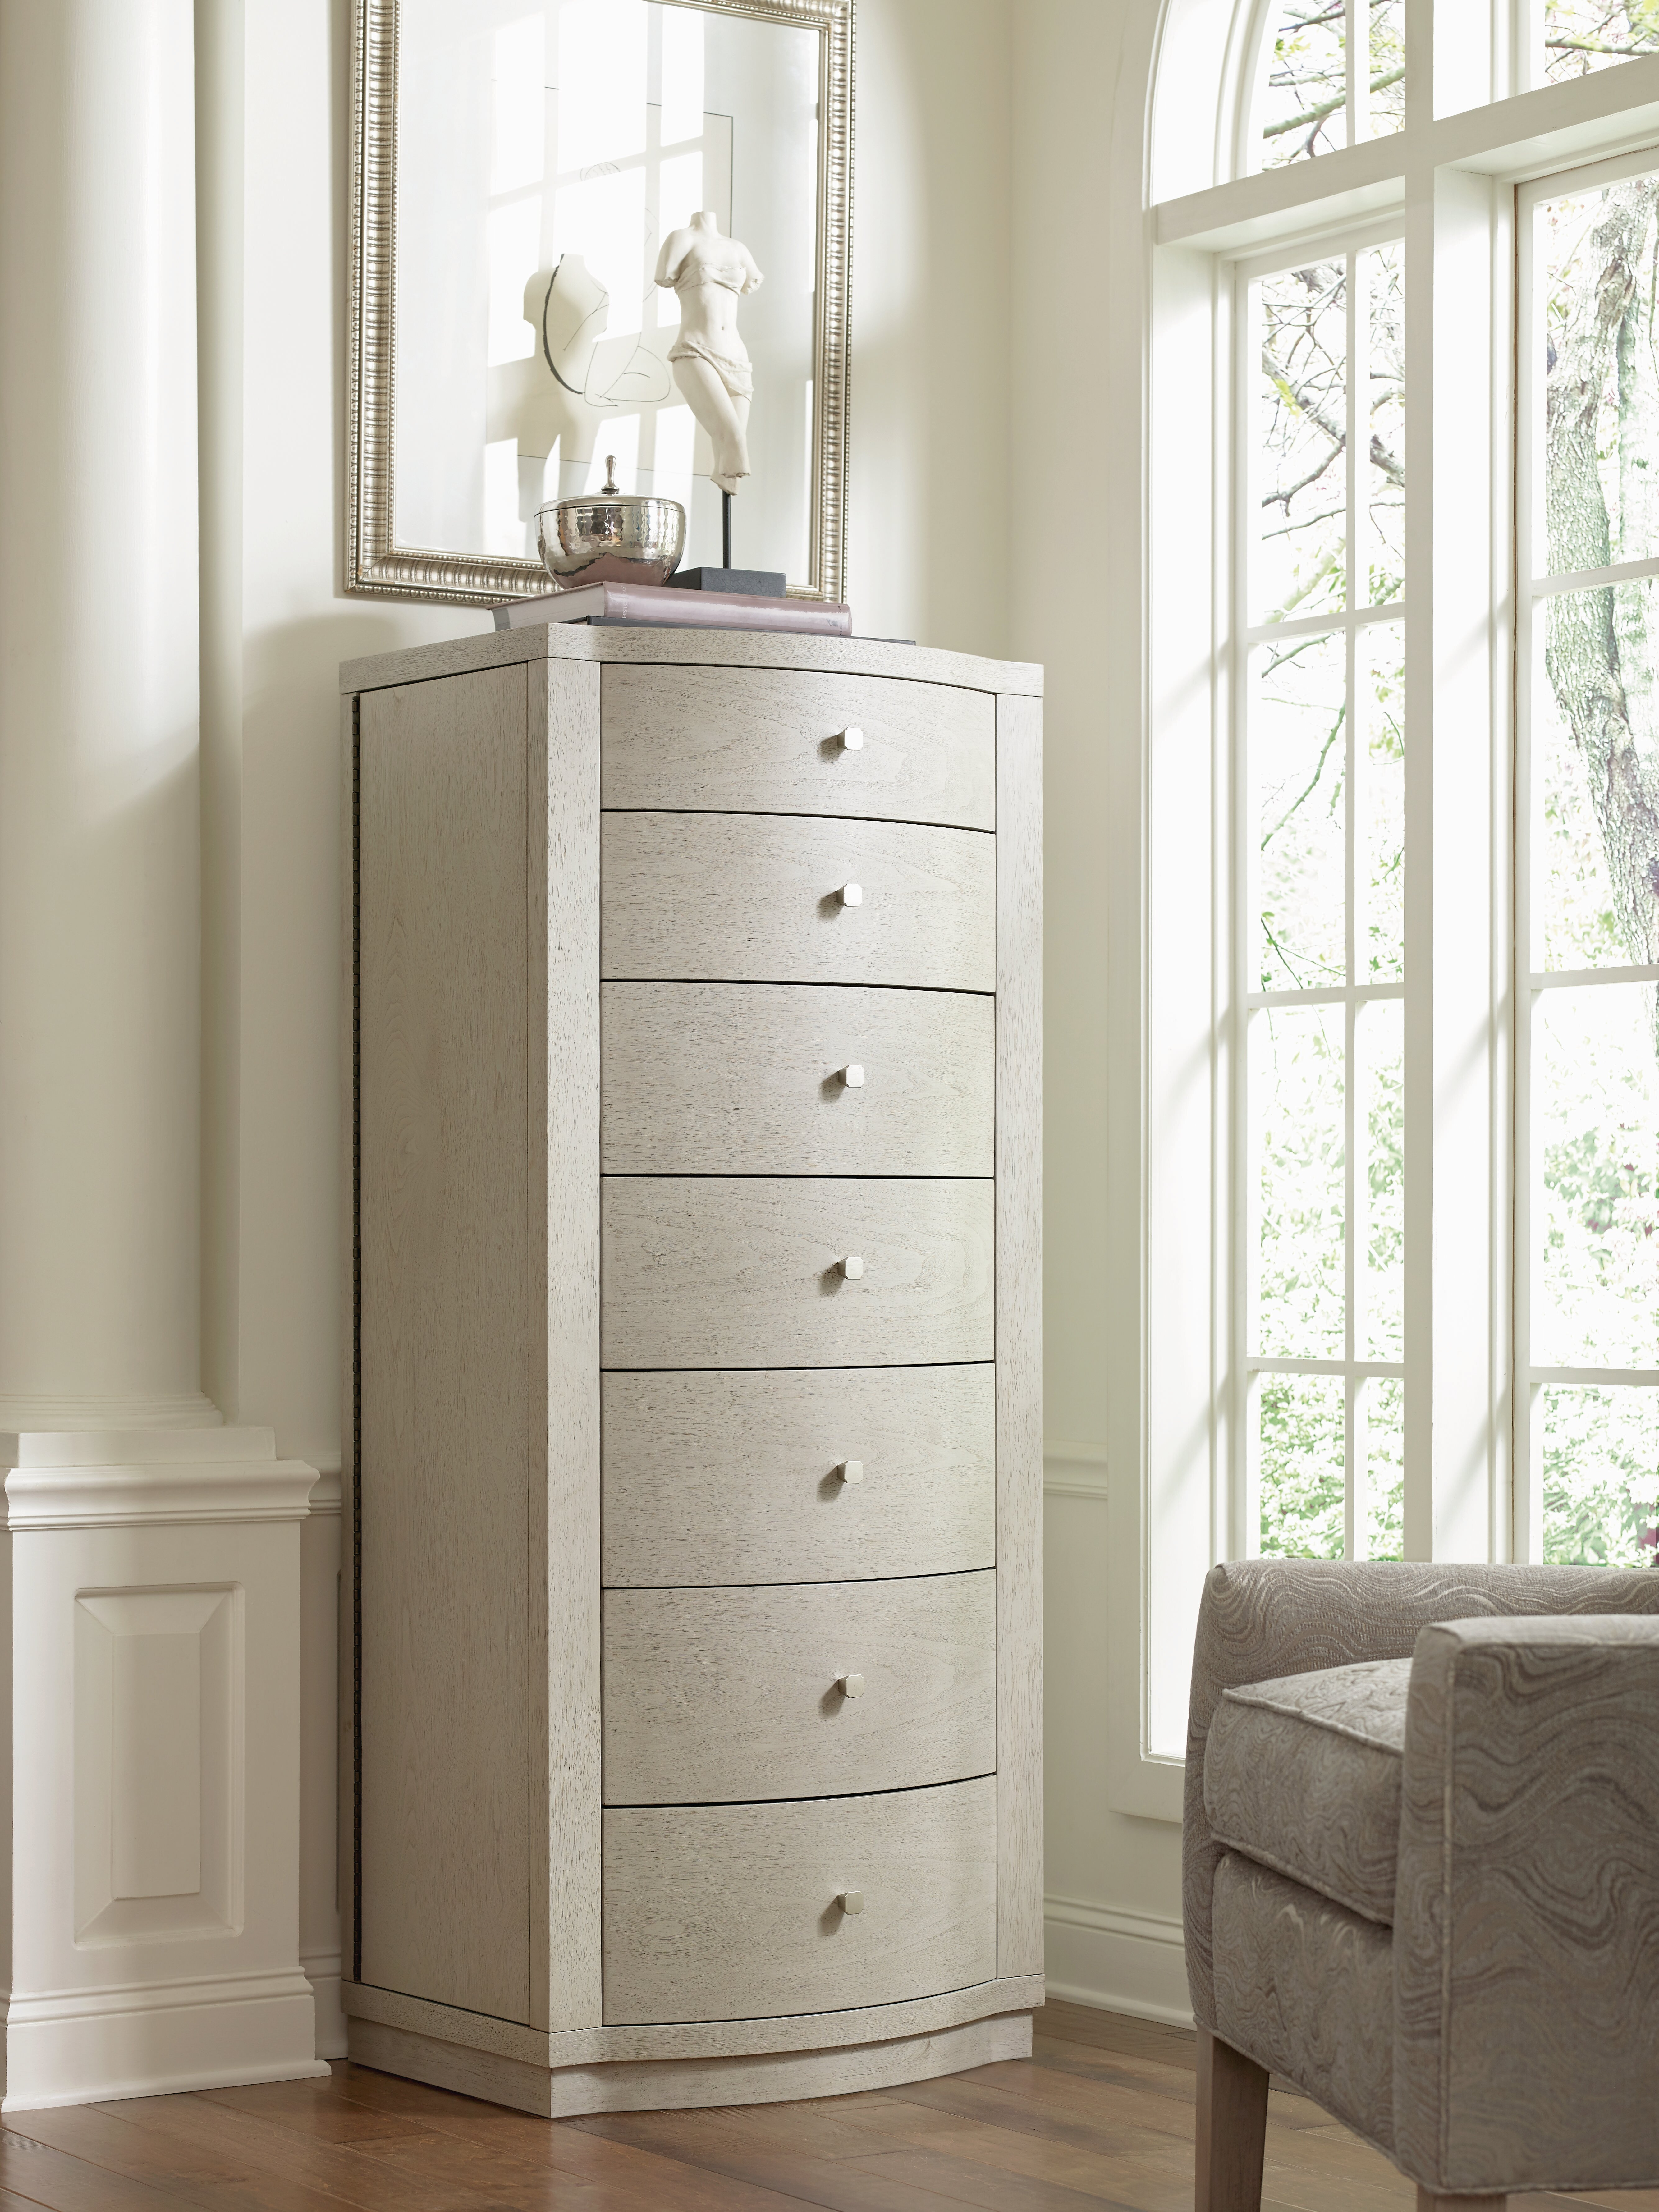 the plus tricks something drawers pin needed dresser lingerie i drawer organizing edition tips extra